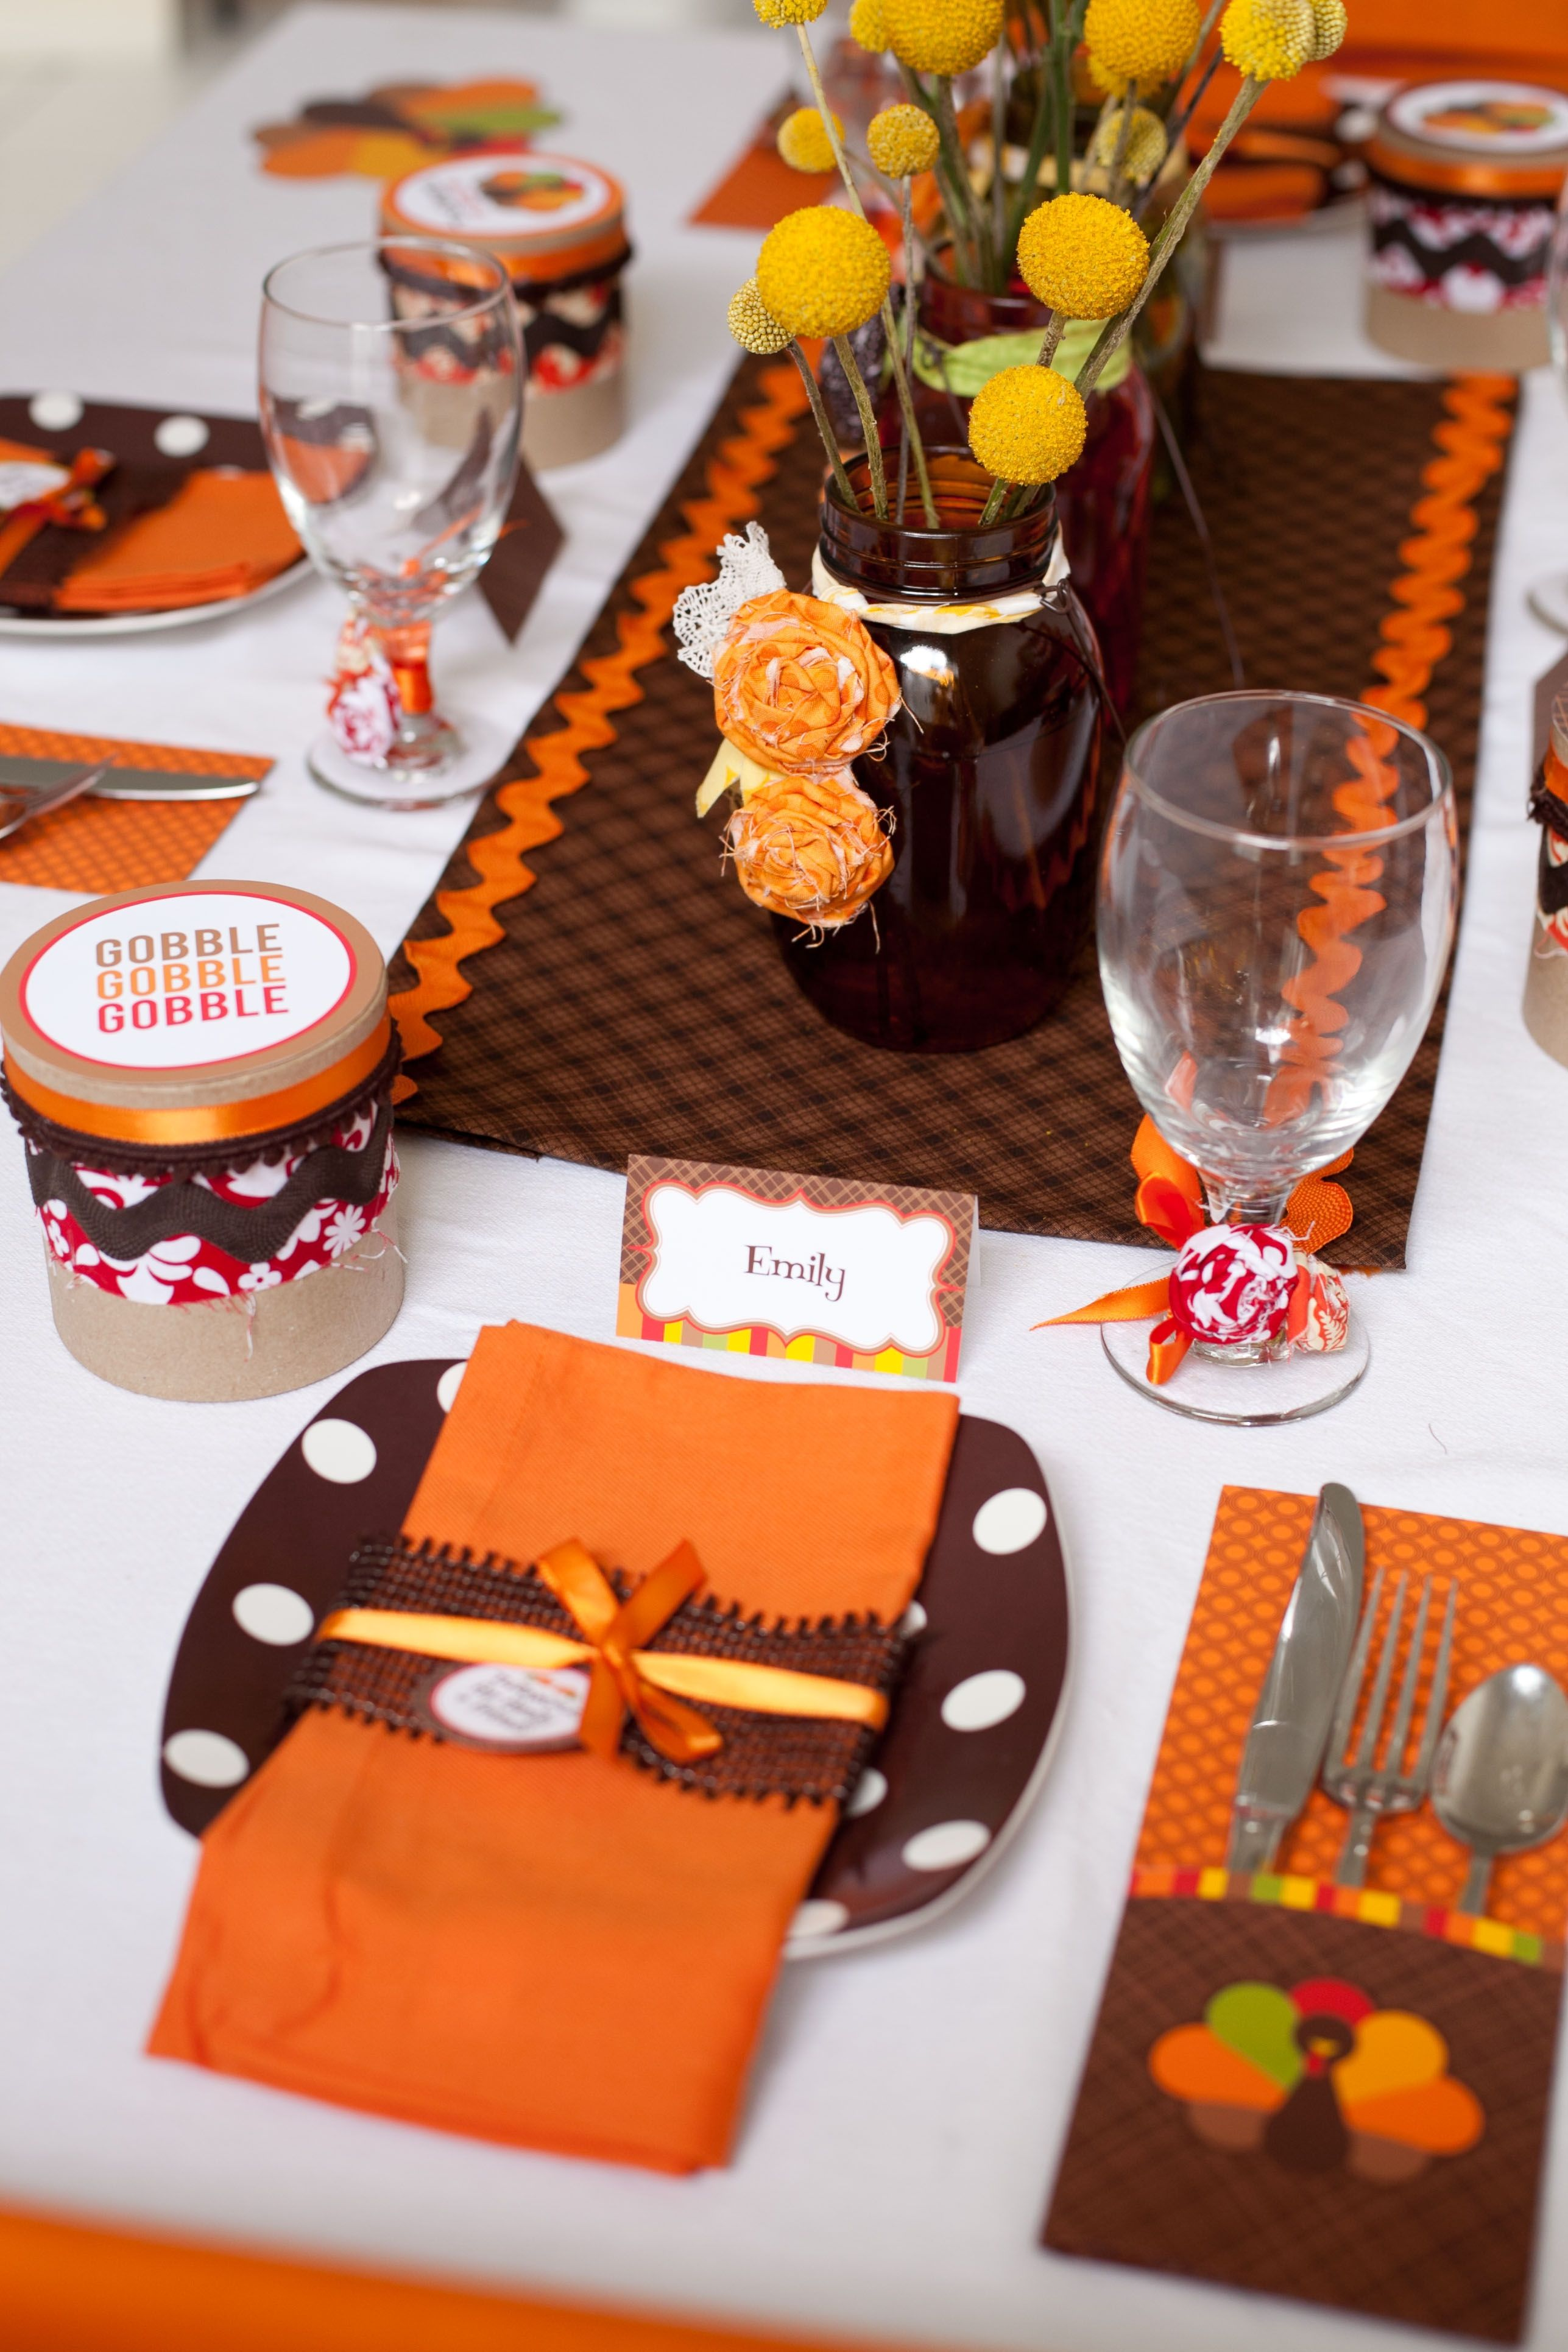 Kid Friendly Table Settings   http://lachpage.com   Pinterest ...